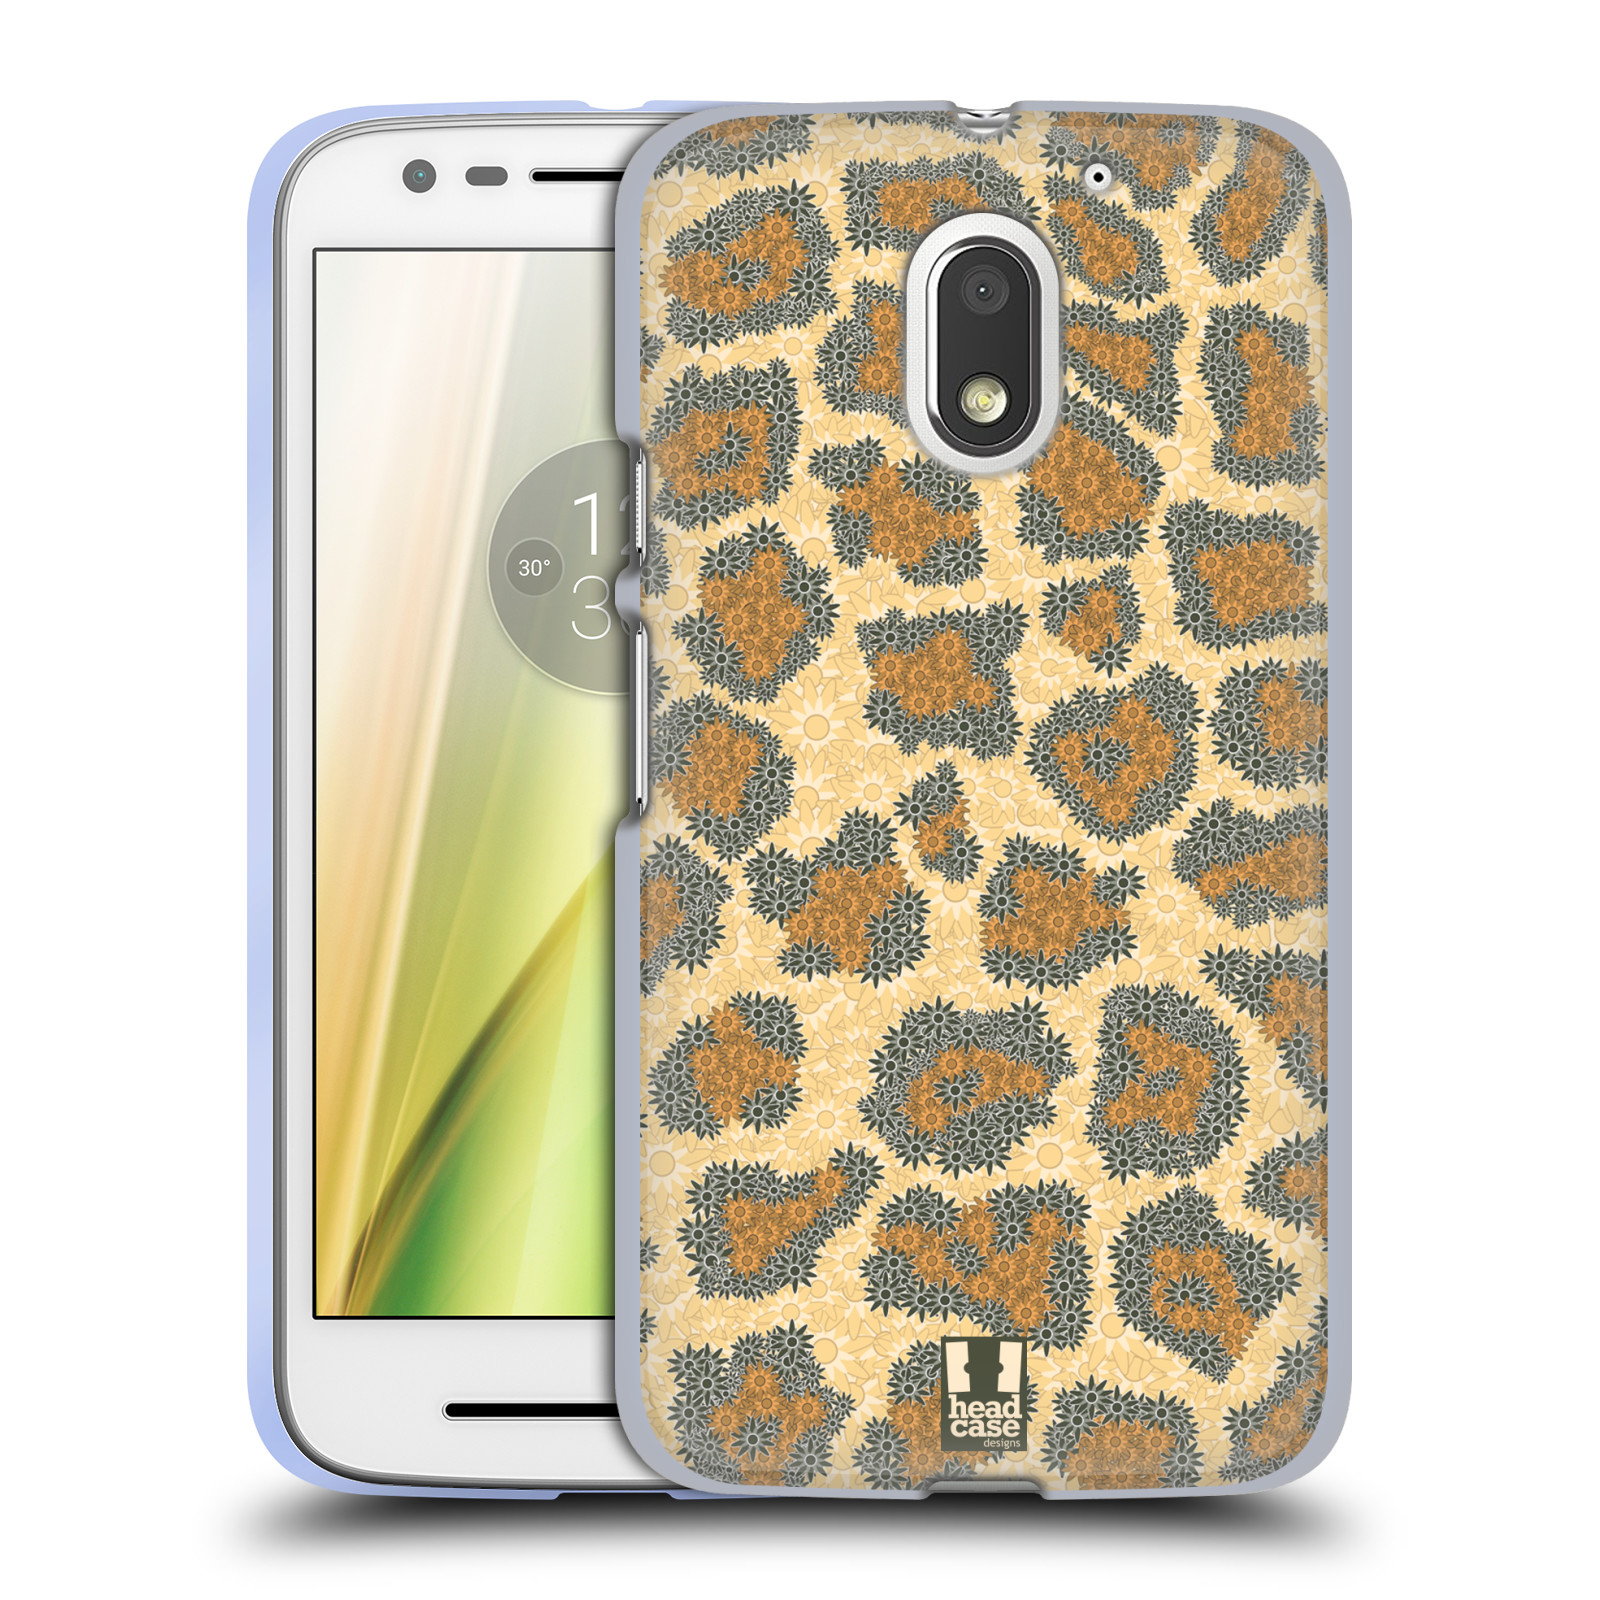 HEAD-CASE-DESIGNS-FLOREALE-MIMETICA-CASE-IN-GEL-PER-MOTOROLA-MOTO-E3-POWER